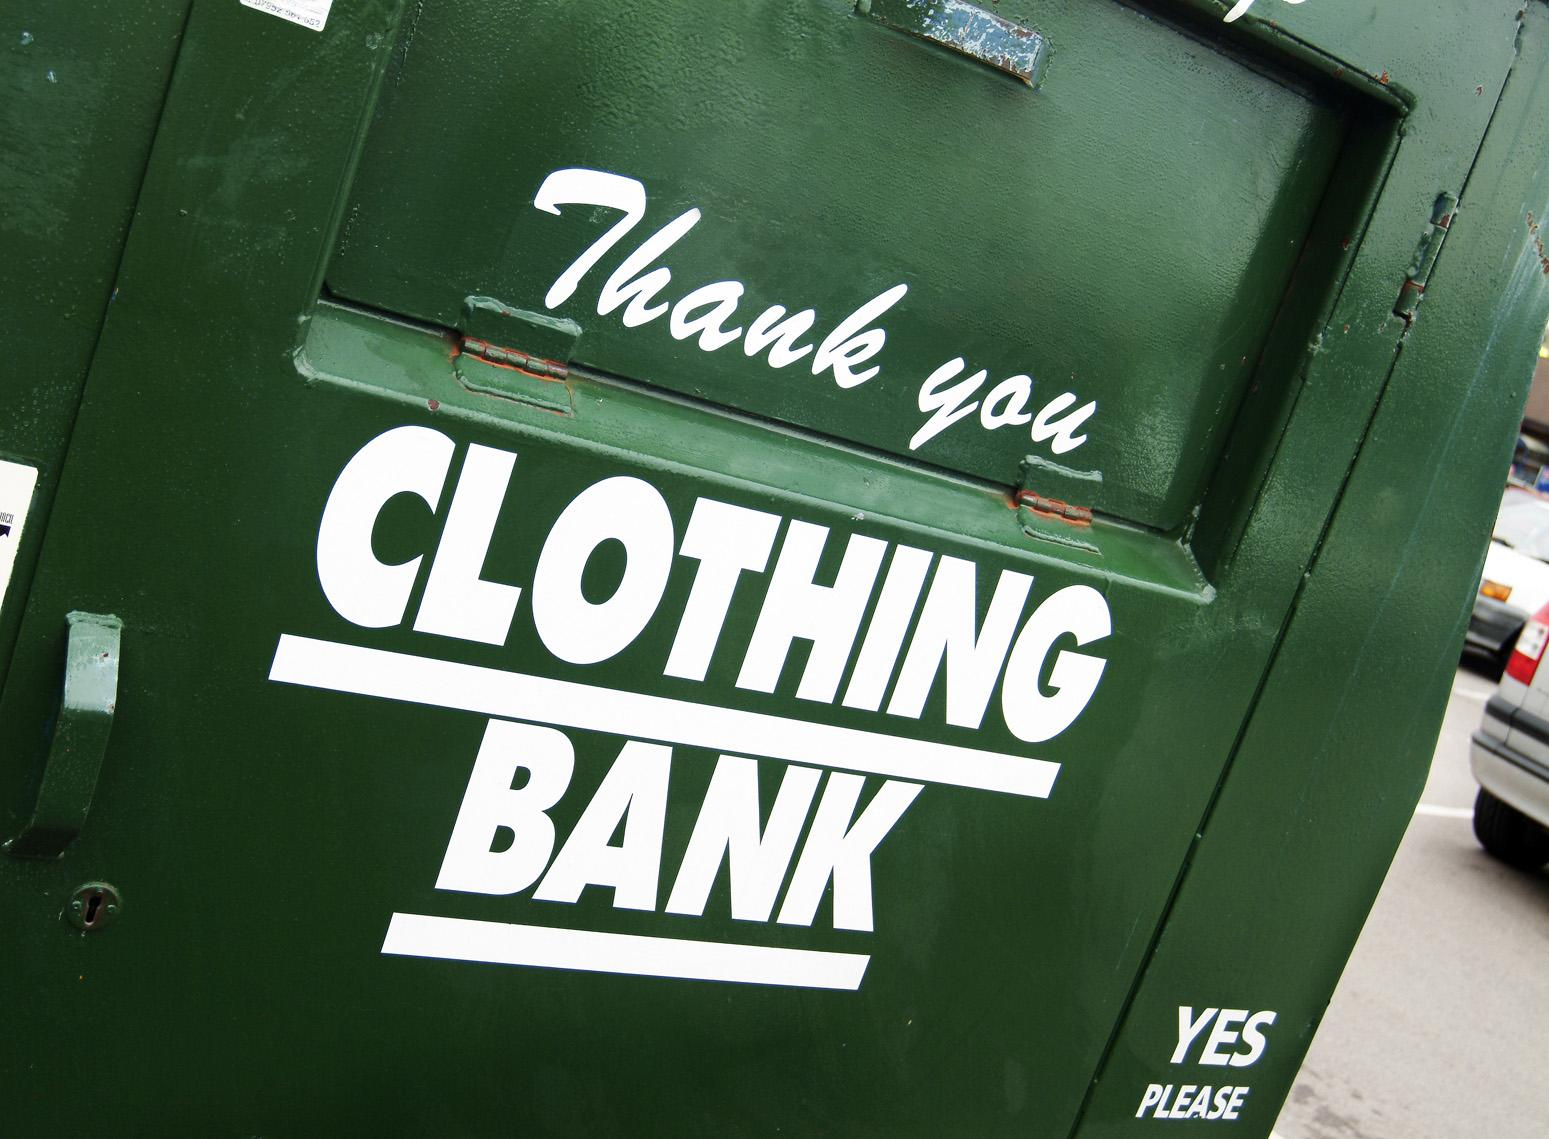 Clothing bank.